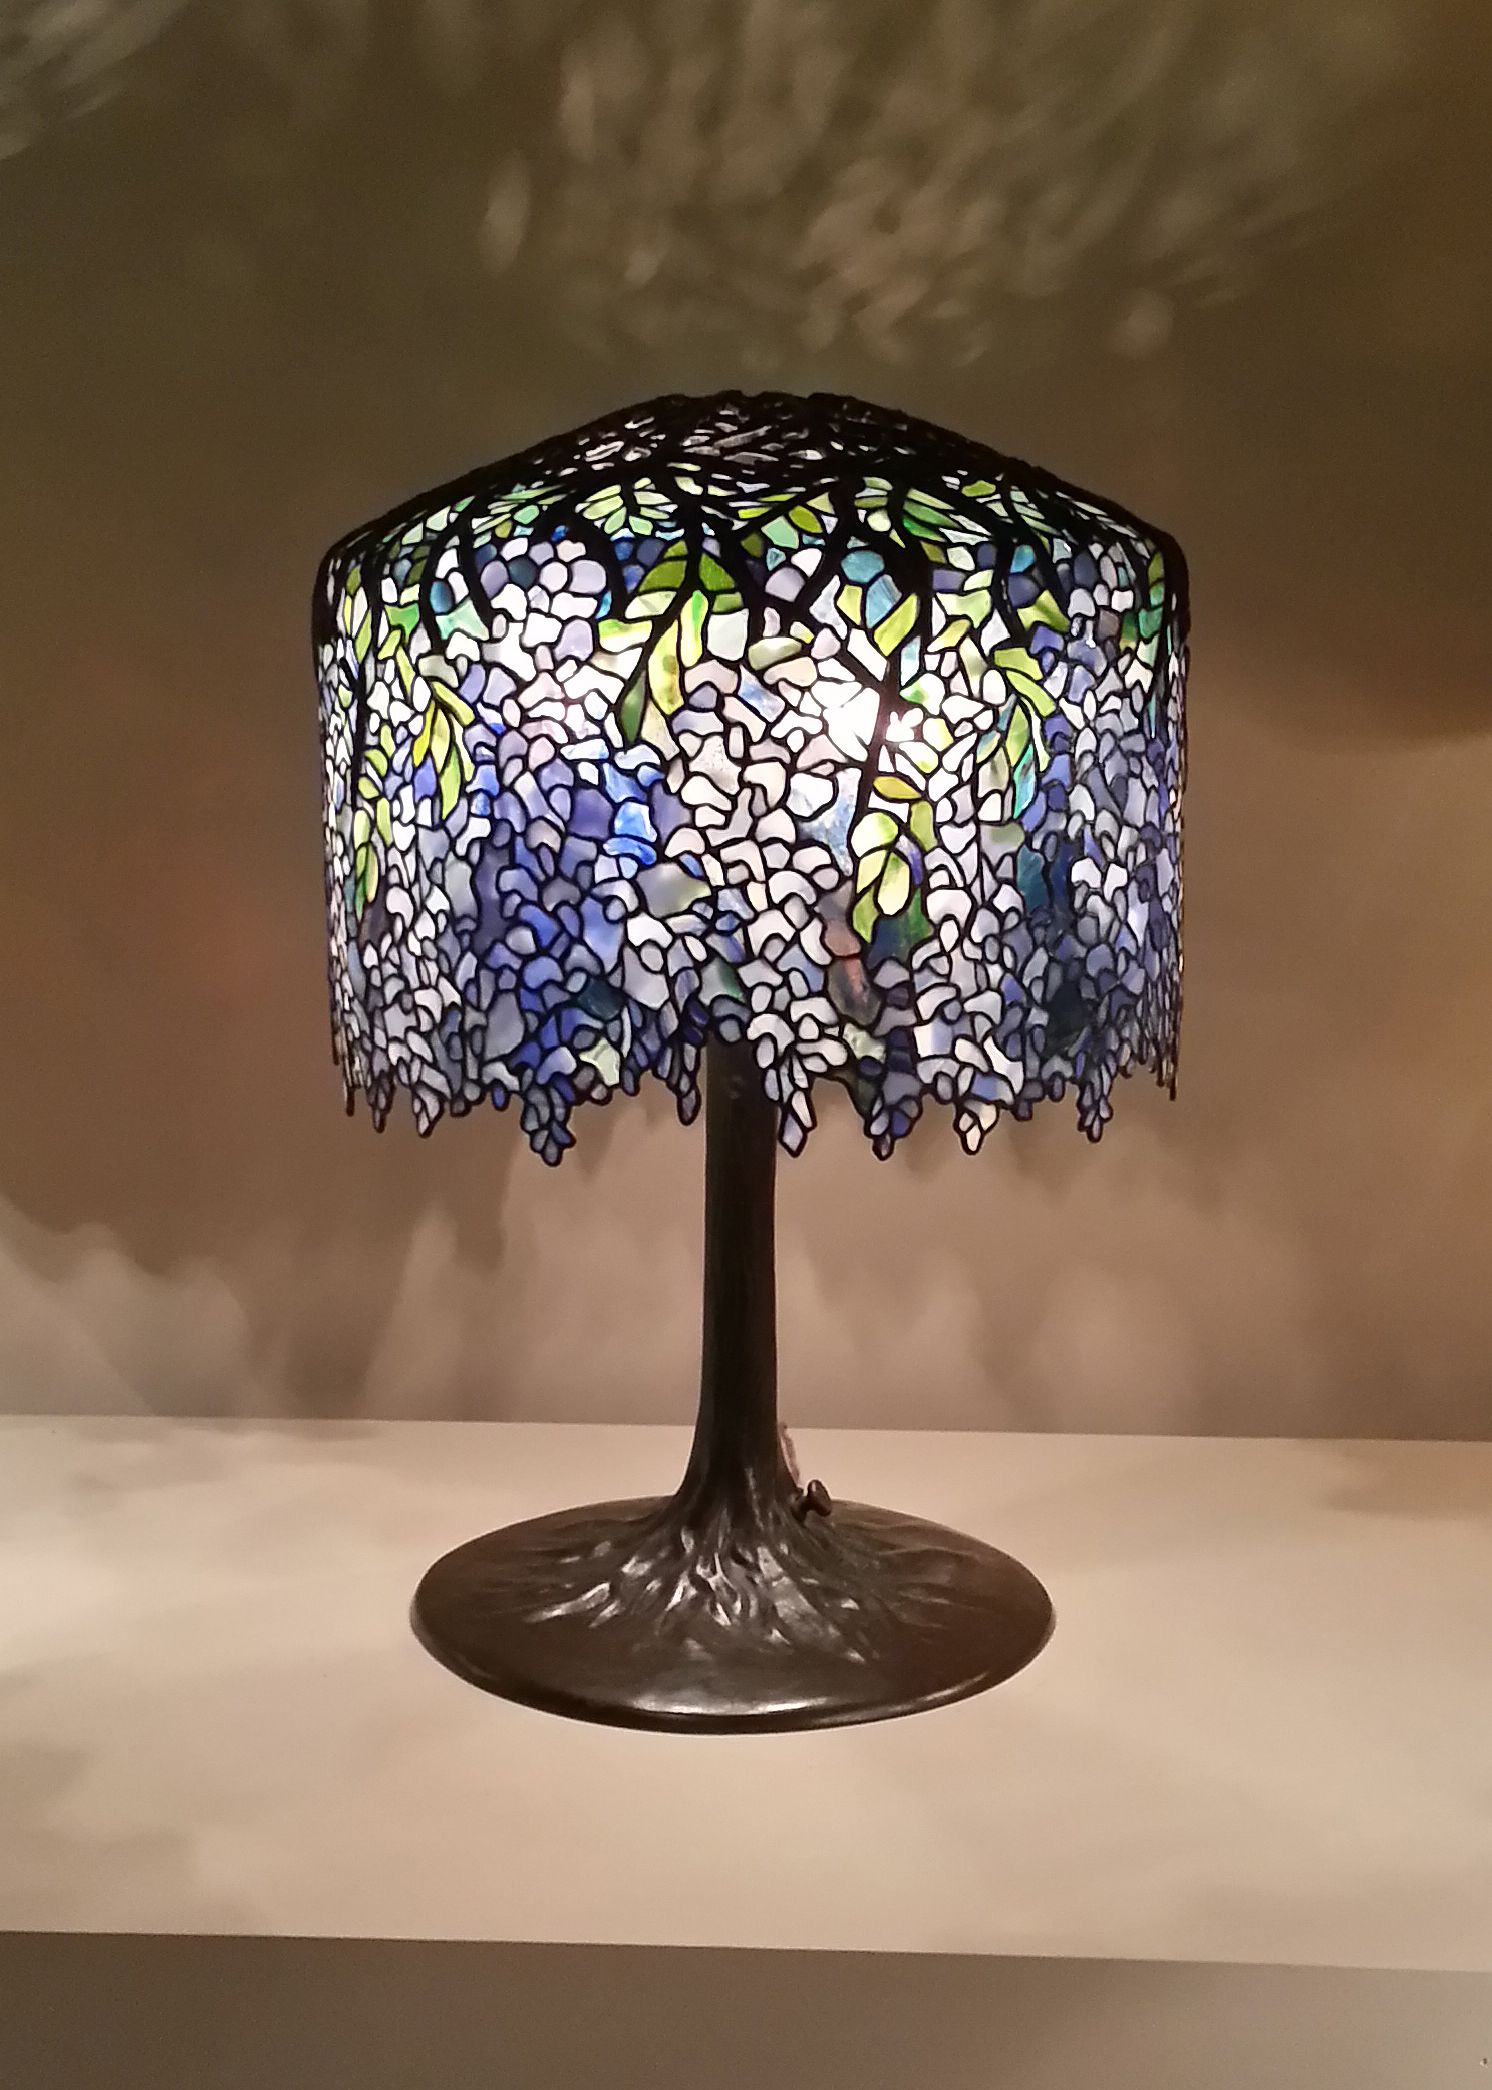 Wonderful Wisteria Tiffany Studios Lamp   Louis Comfort Tiffany   Wikipedia, The Free  Encyclopedia